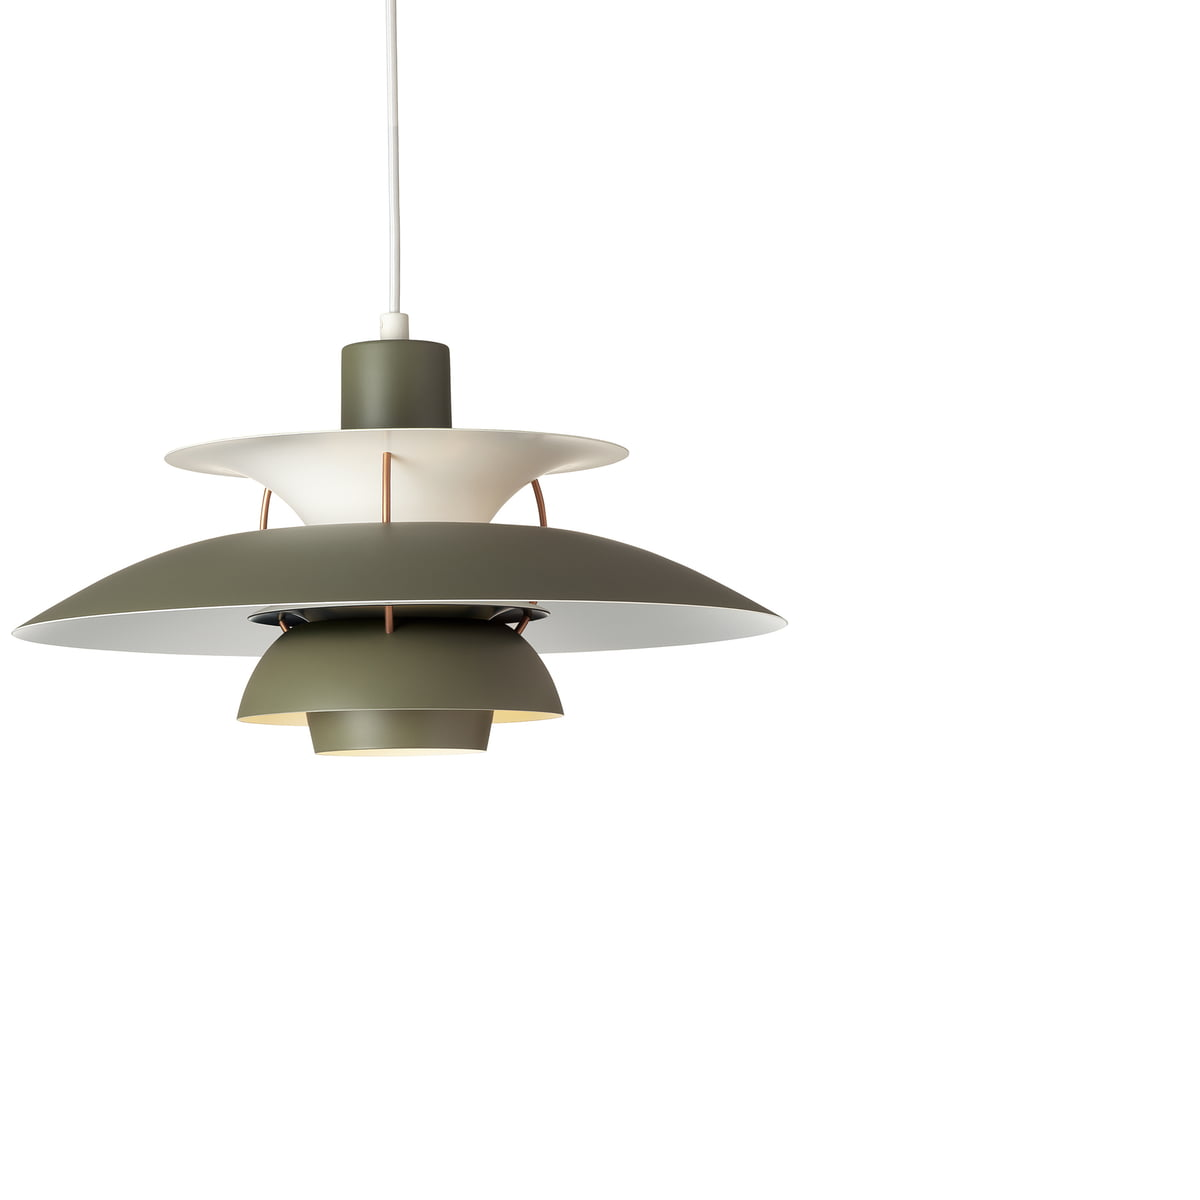 Ph 5 pendant light by louis poulsen louis poulsen ph 5 pendant lamp army green dark grey aloadofball Choice Image